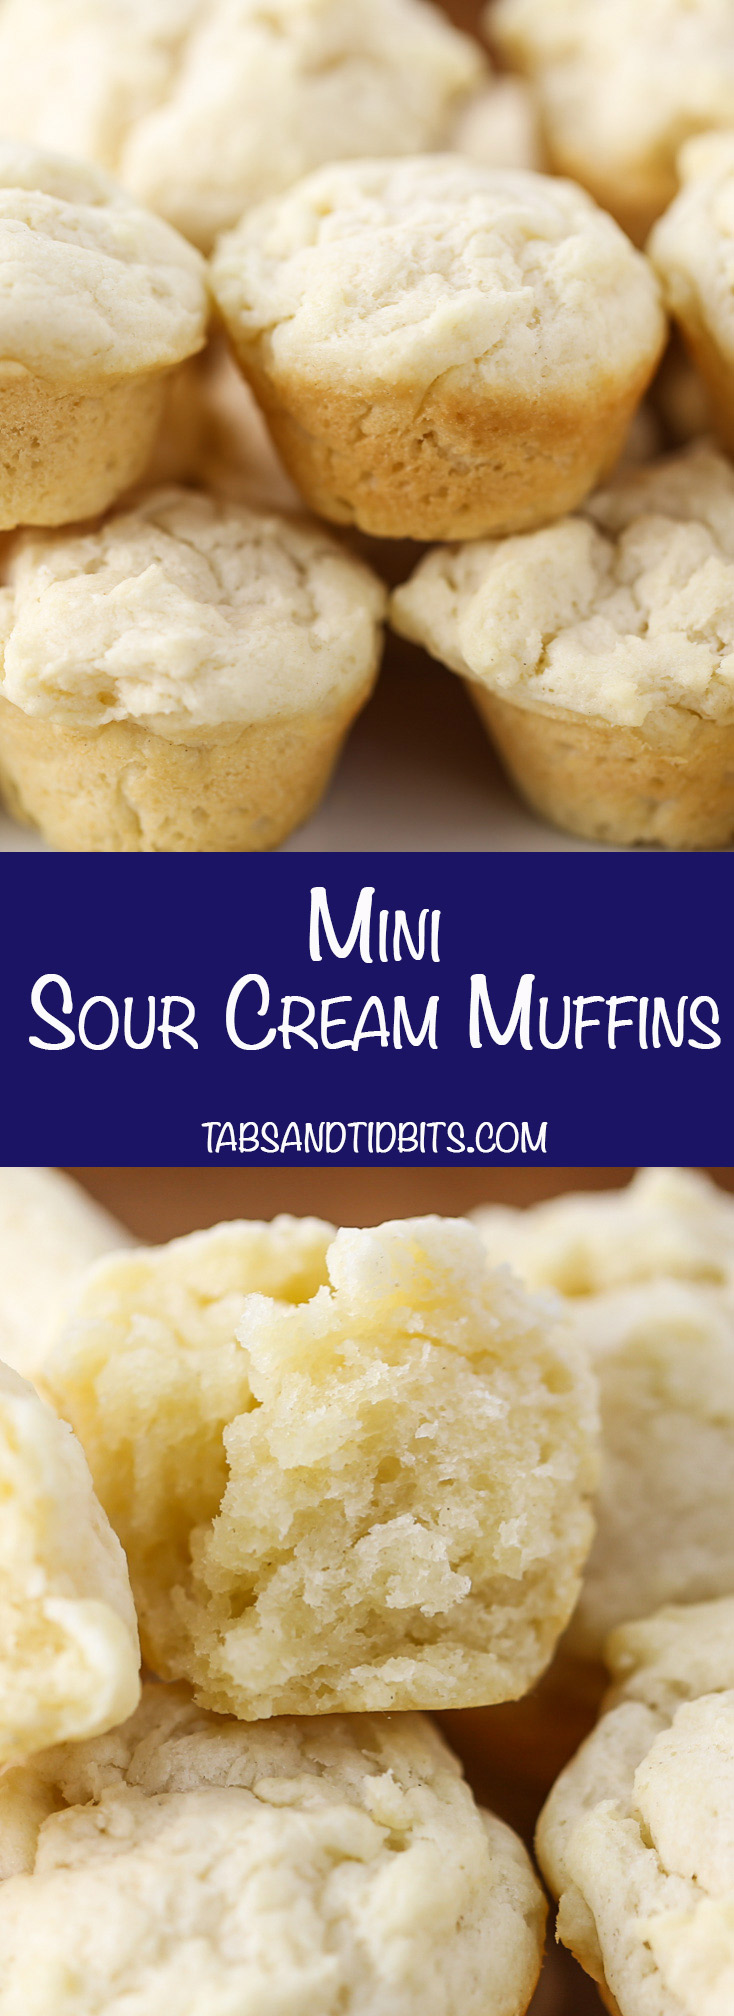 Mini Sour Cream Muffins - Decadent, savory, and melt in your mouth muffins made with just three ingredients!